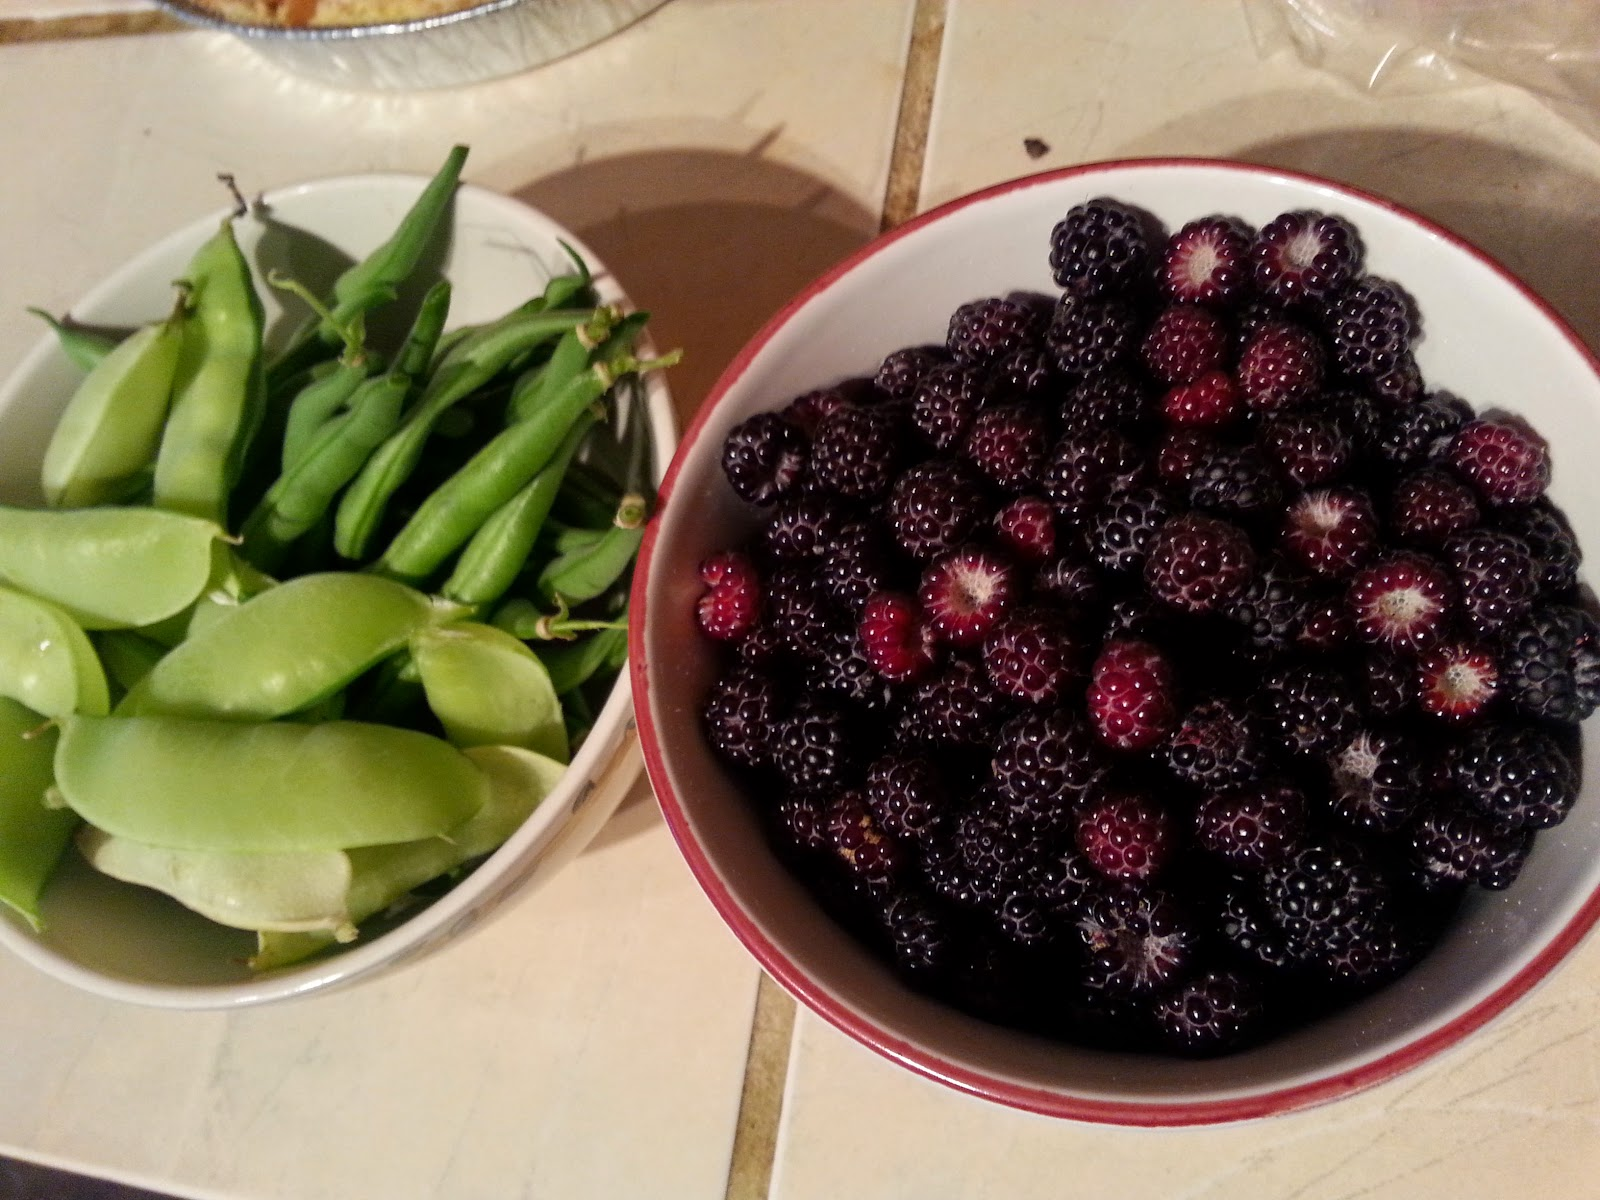 Garden update with our #Harvest